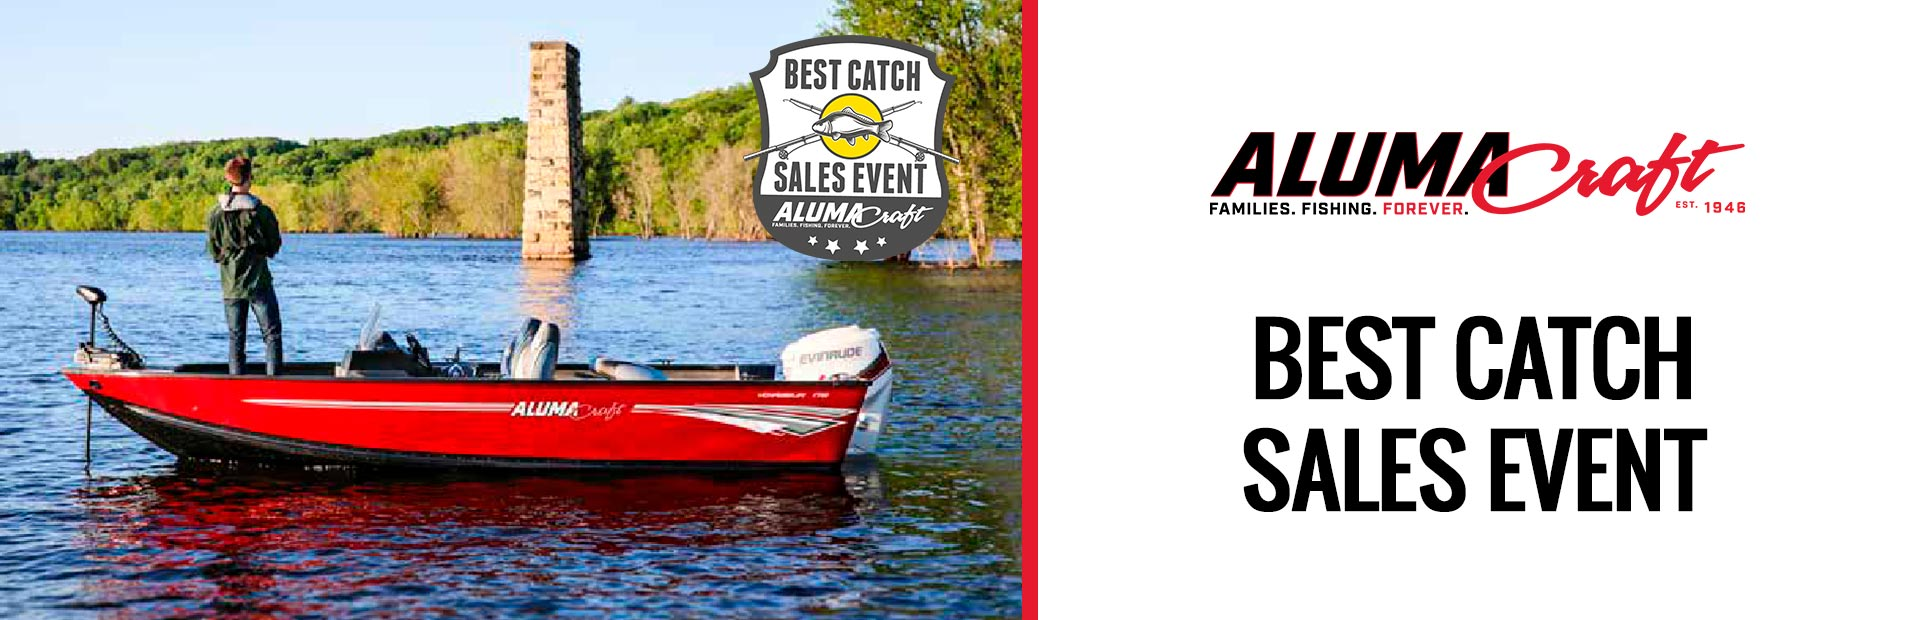 Alumacraft: BEST CATCH SALES EVENT